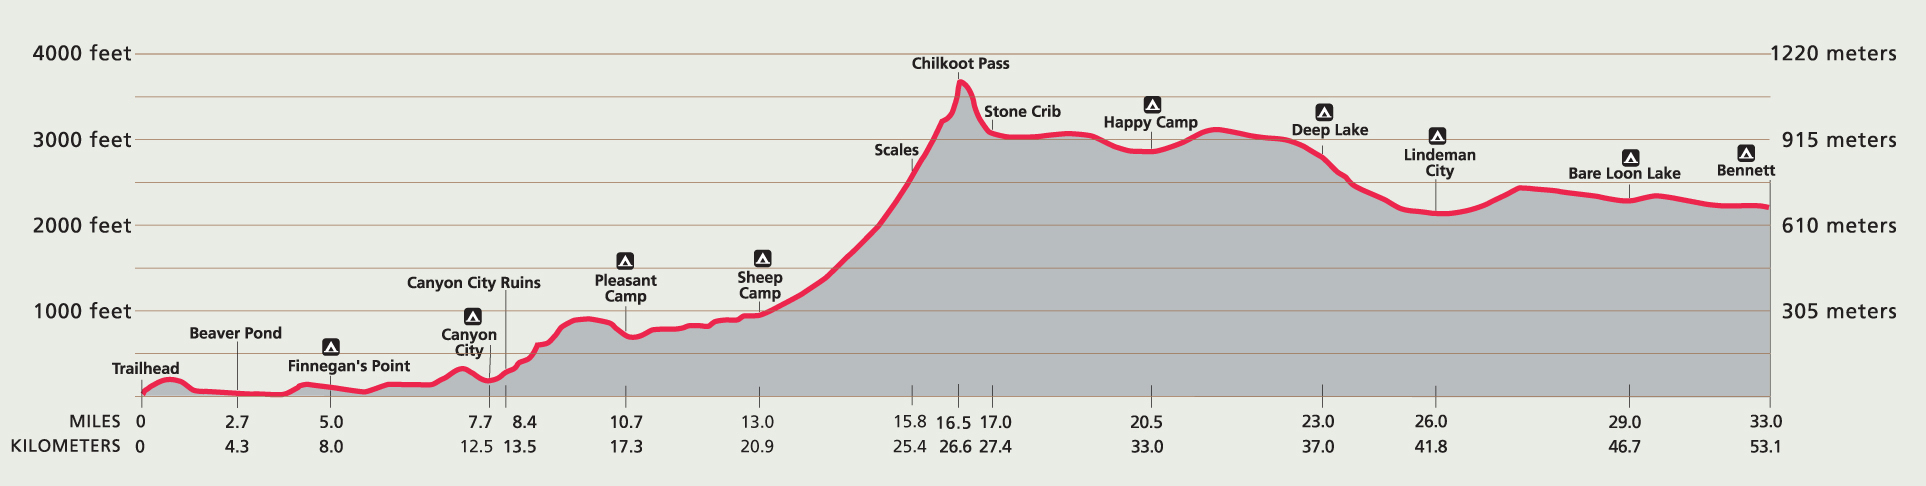 Chilkoot Trail Profile